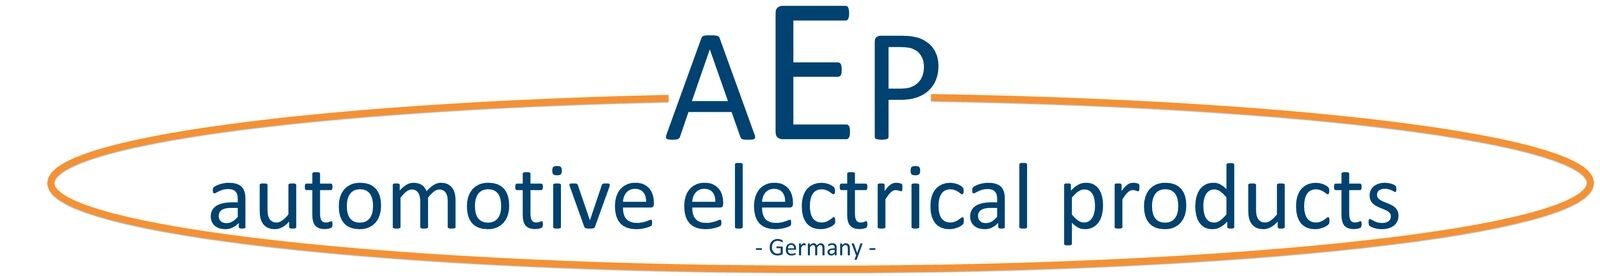 AEP-Germany